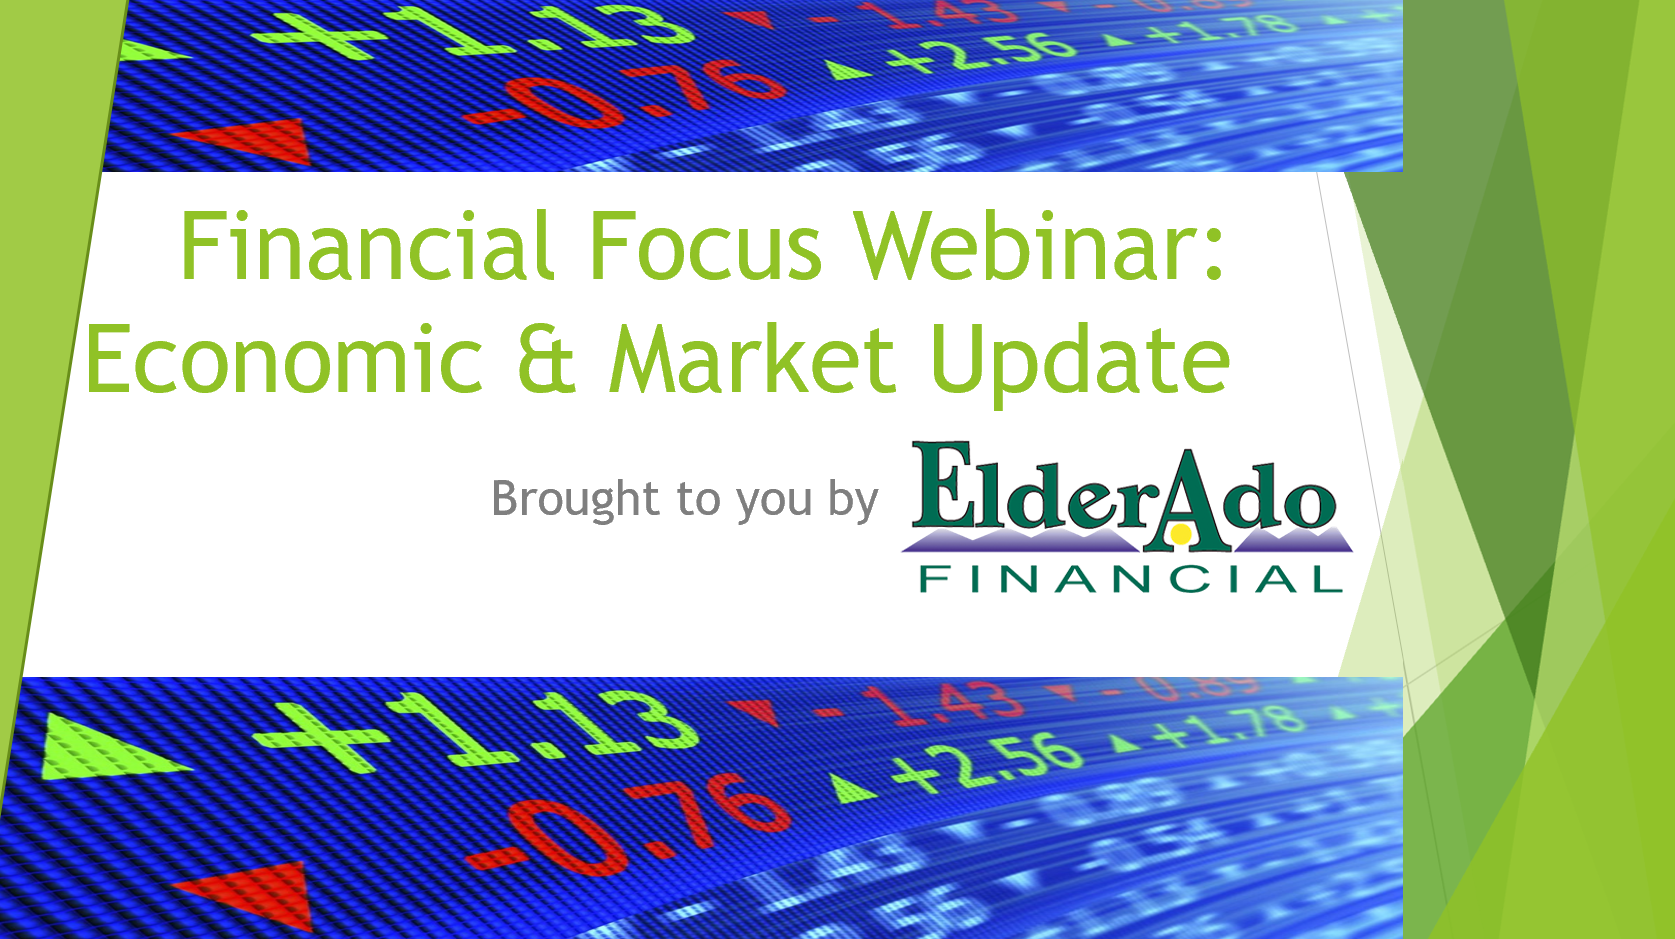 Financial Focus Webinar: Economic & Market Update